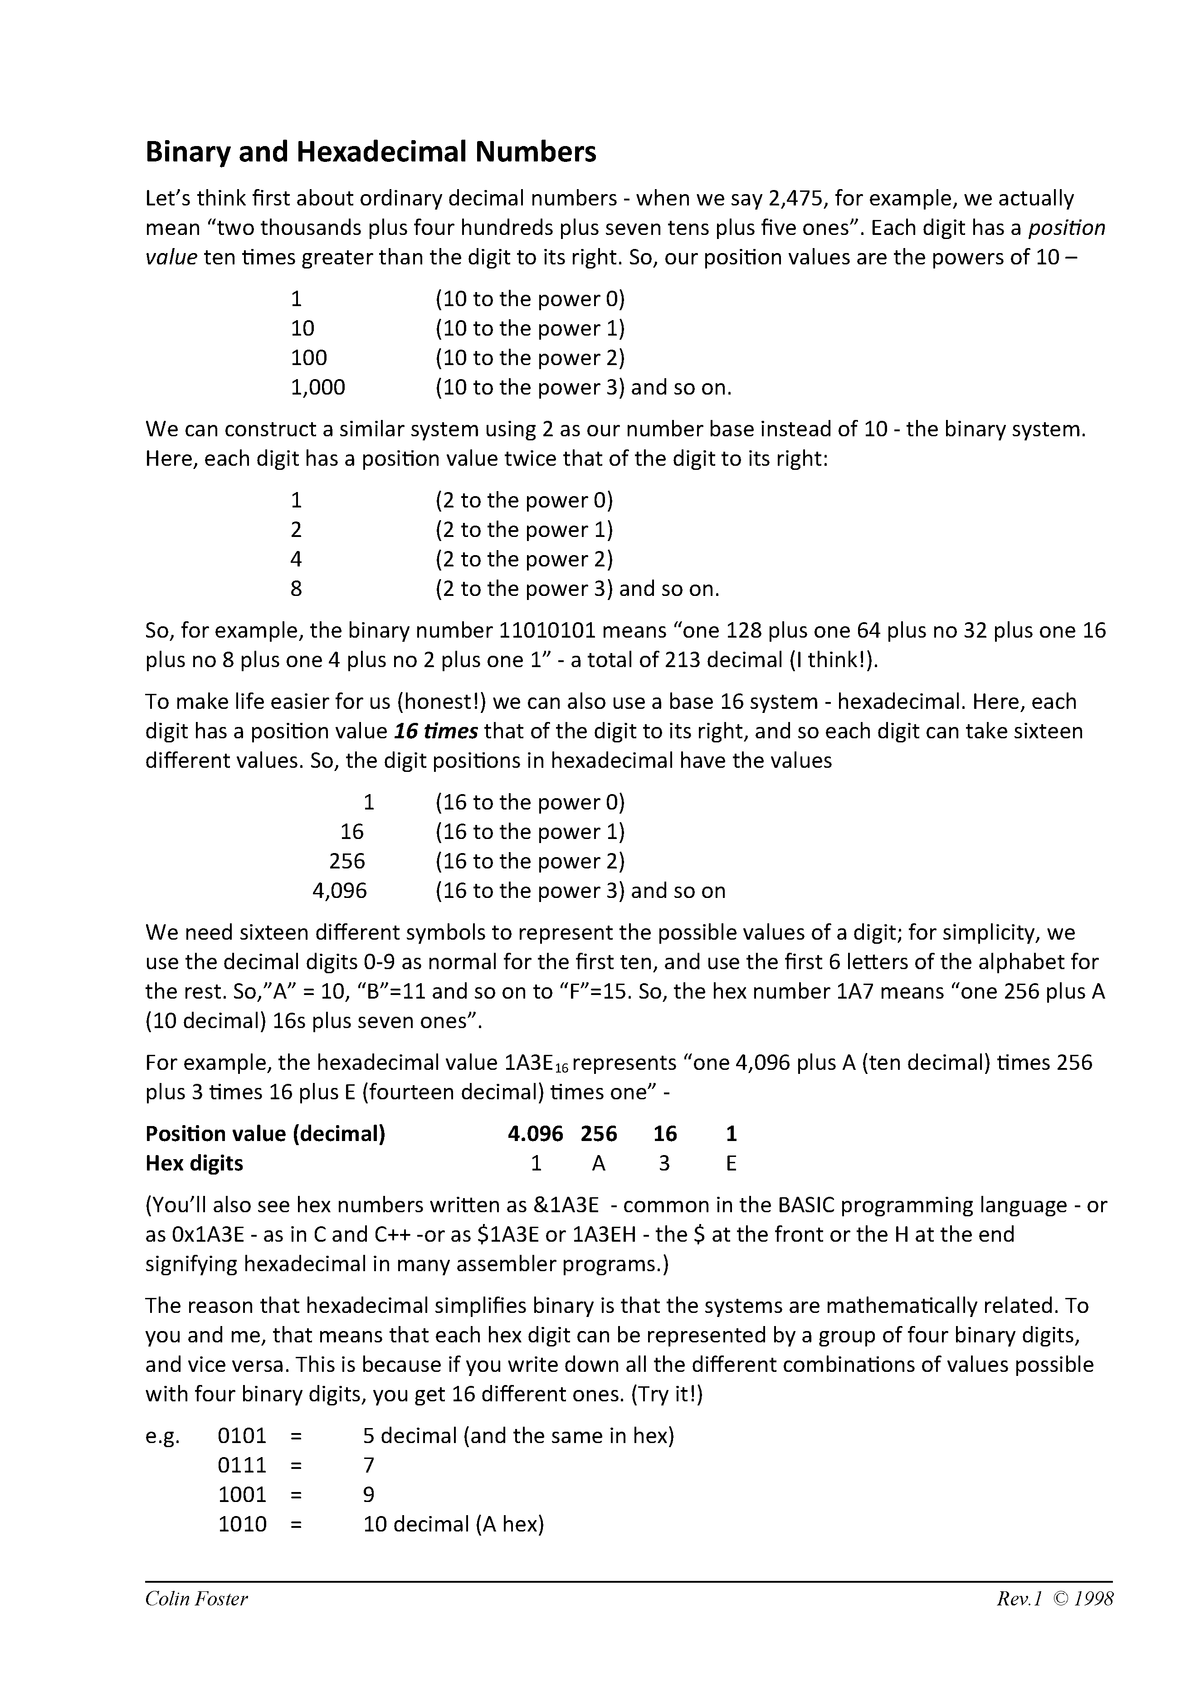 1 Binary Basics homework - Computer Architecture, Networks